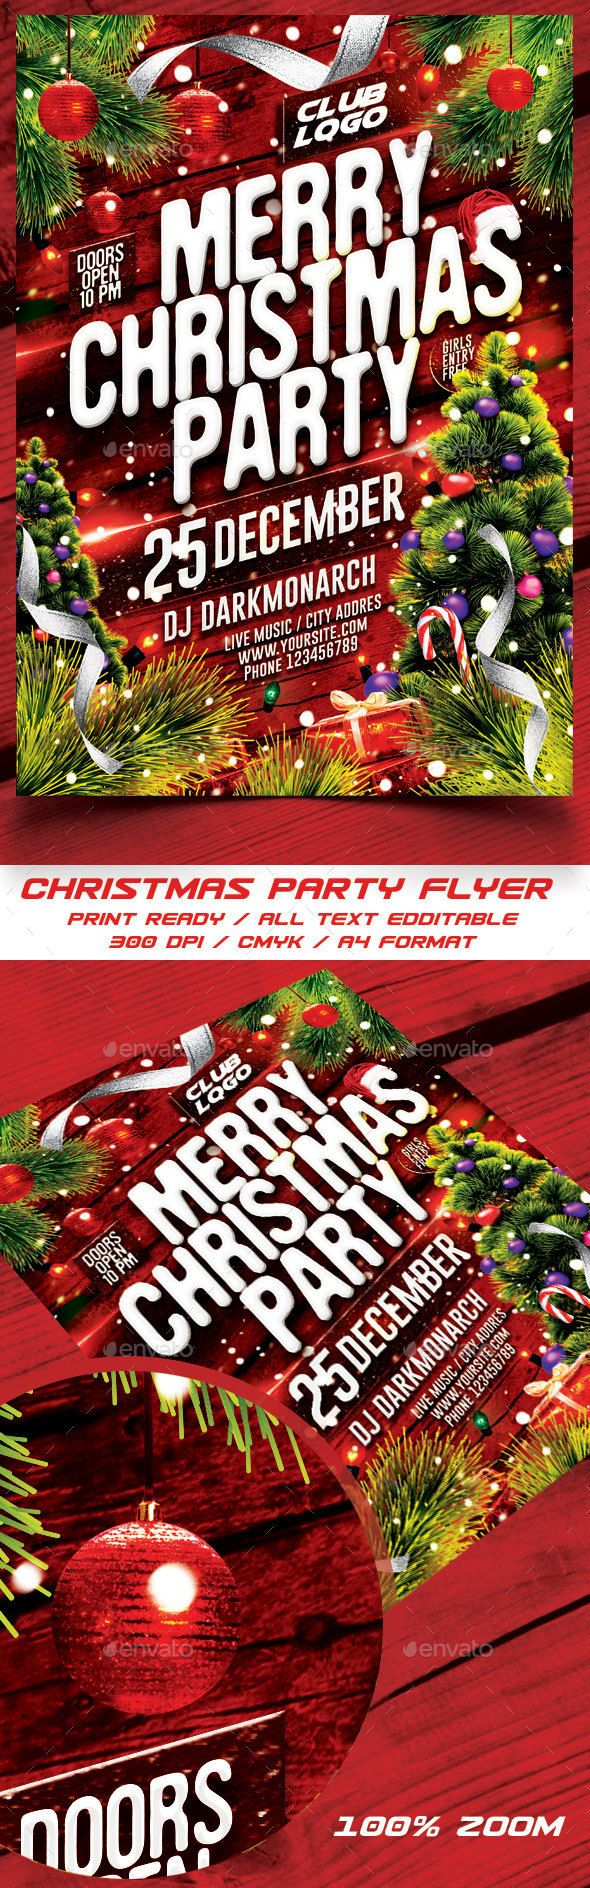 best images about christmas christmas parties merry christmas party flyer